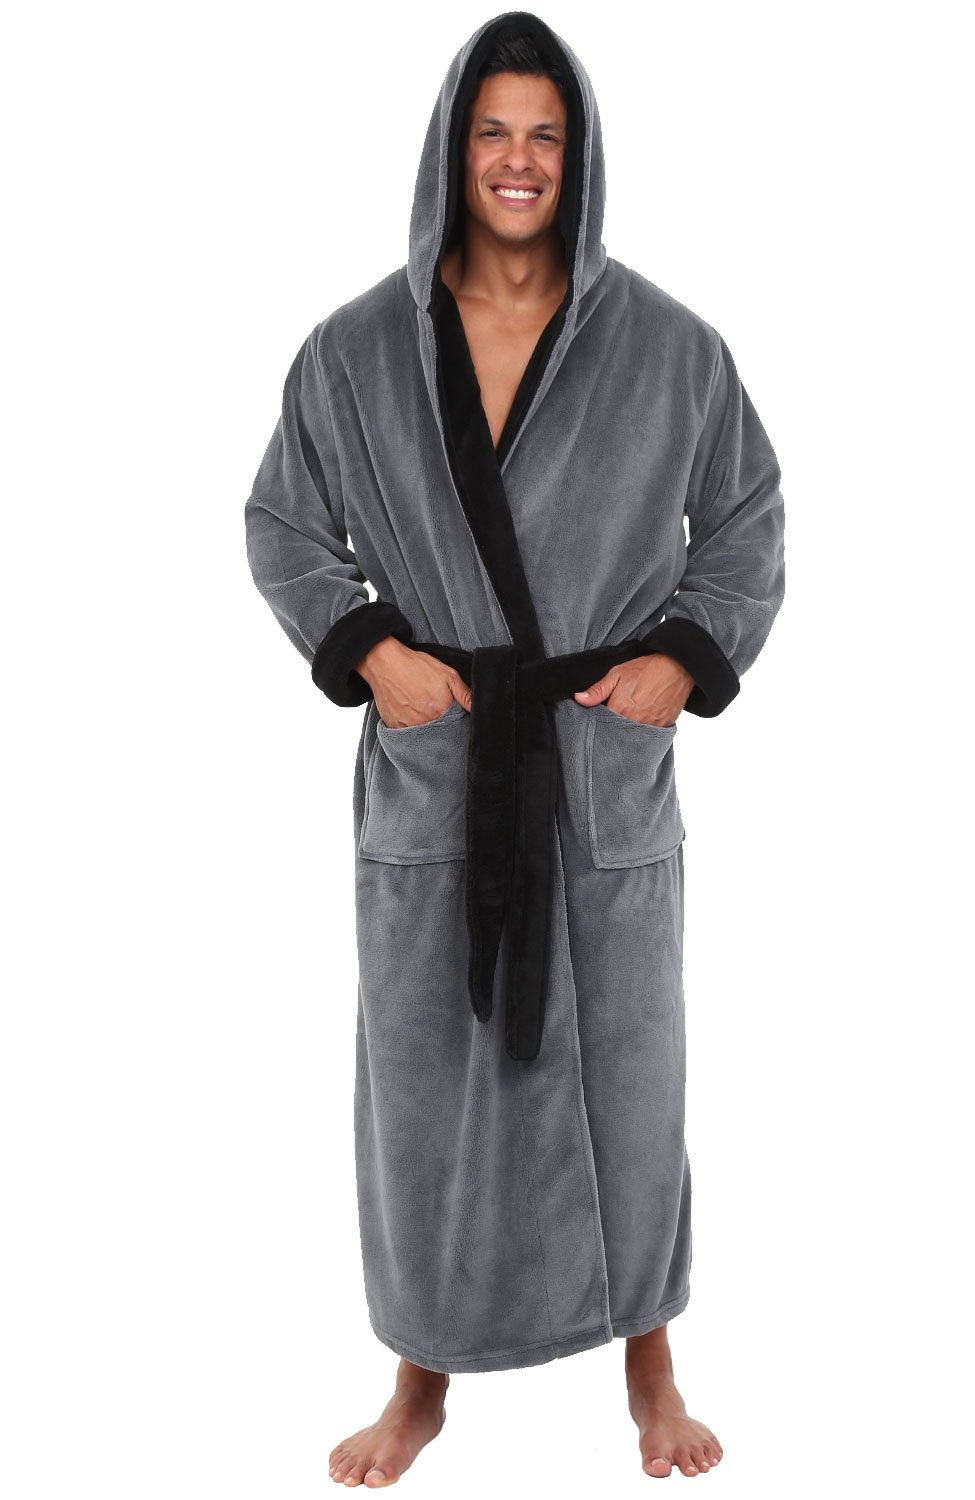 Alexander Del Rossa Mens Fleece Robe with Contrast, Long Hooded Bathrobe A0125-Contrast